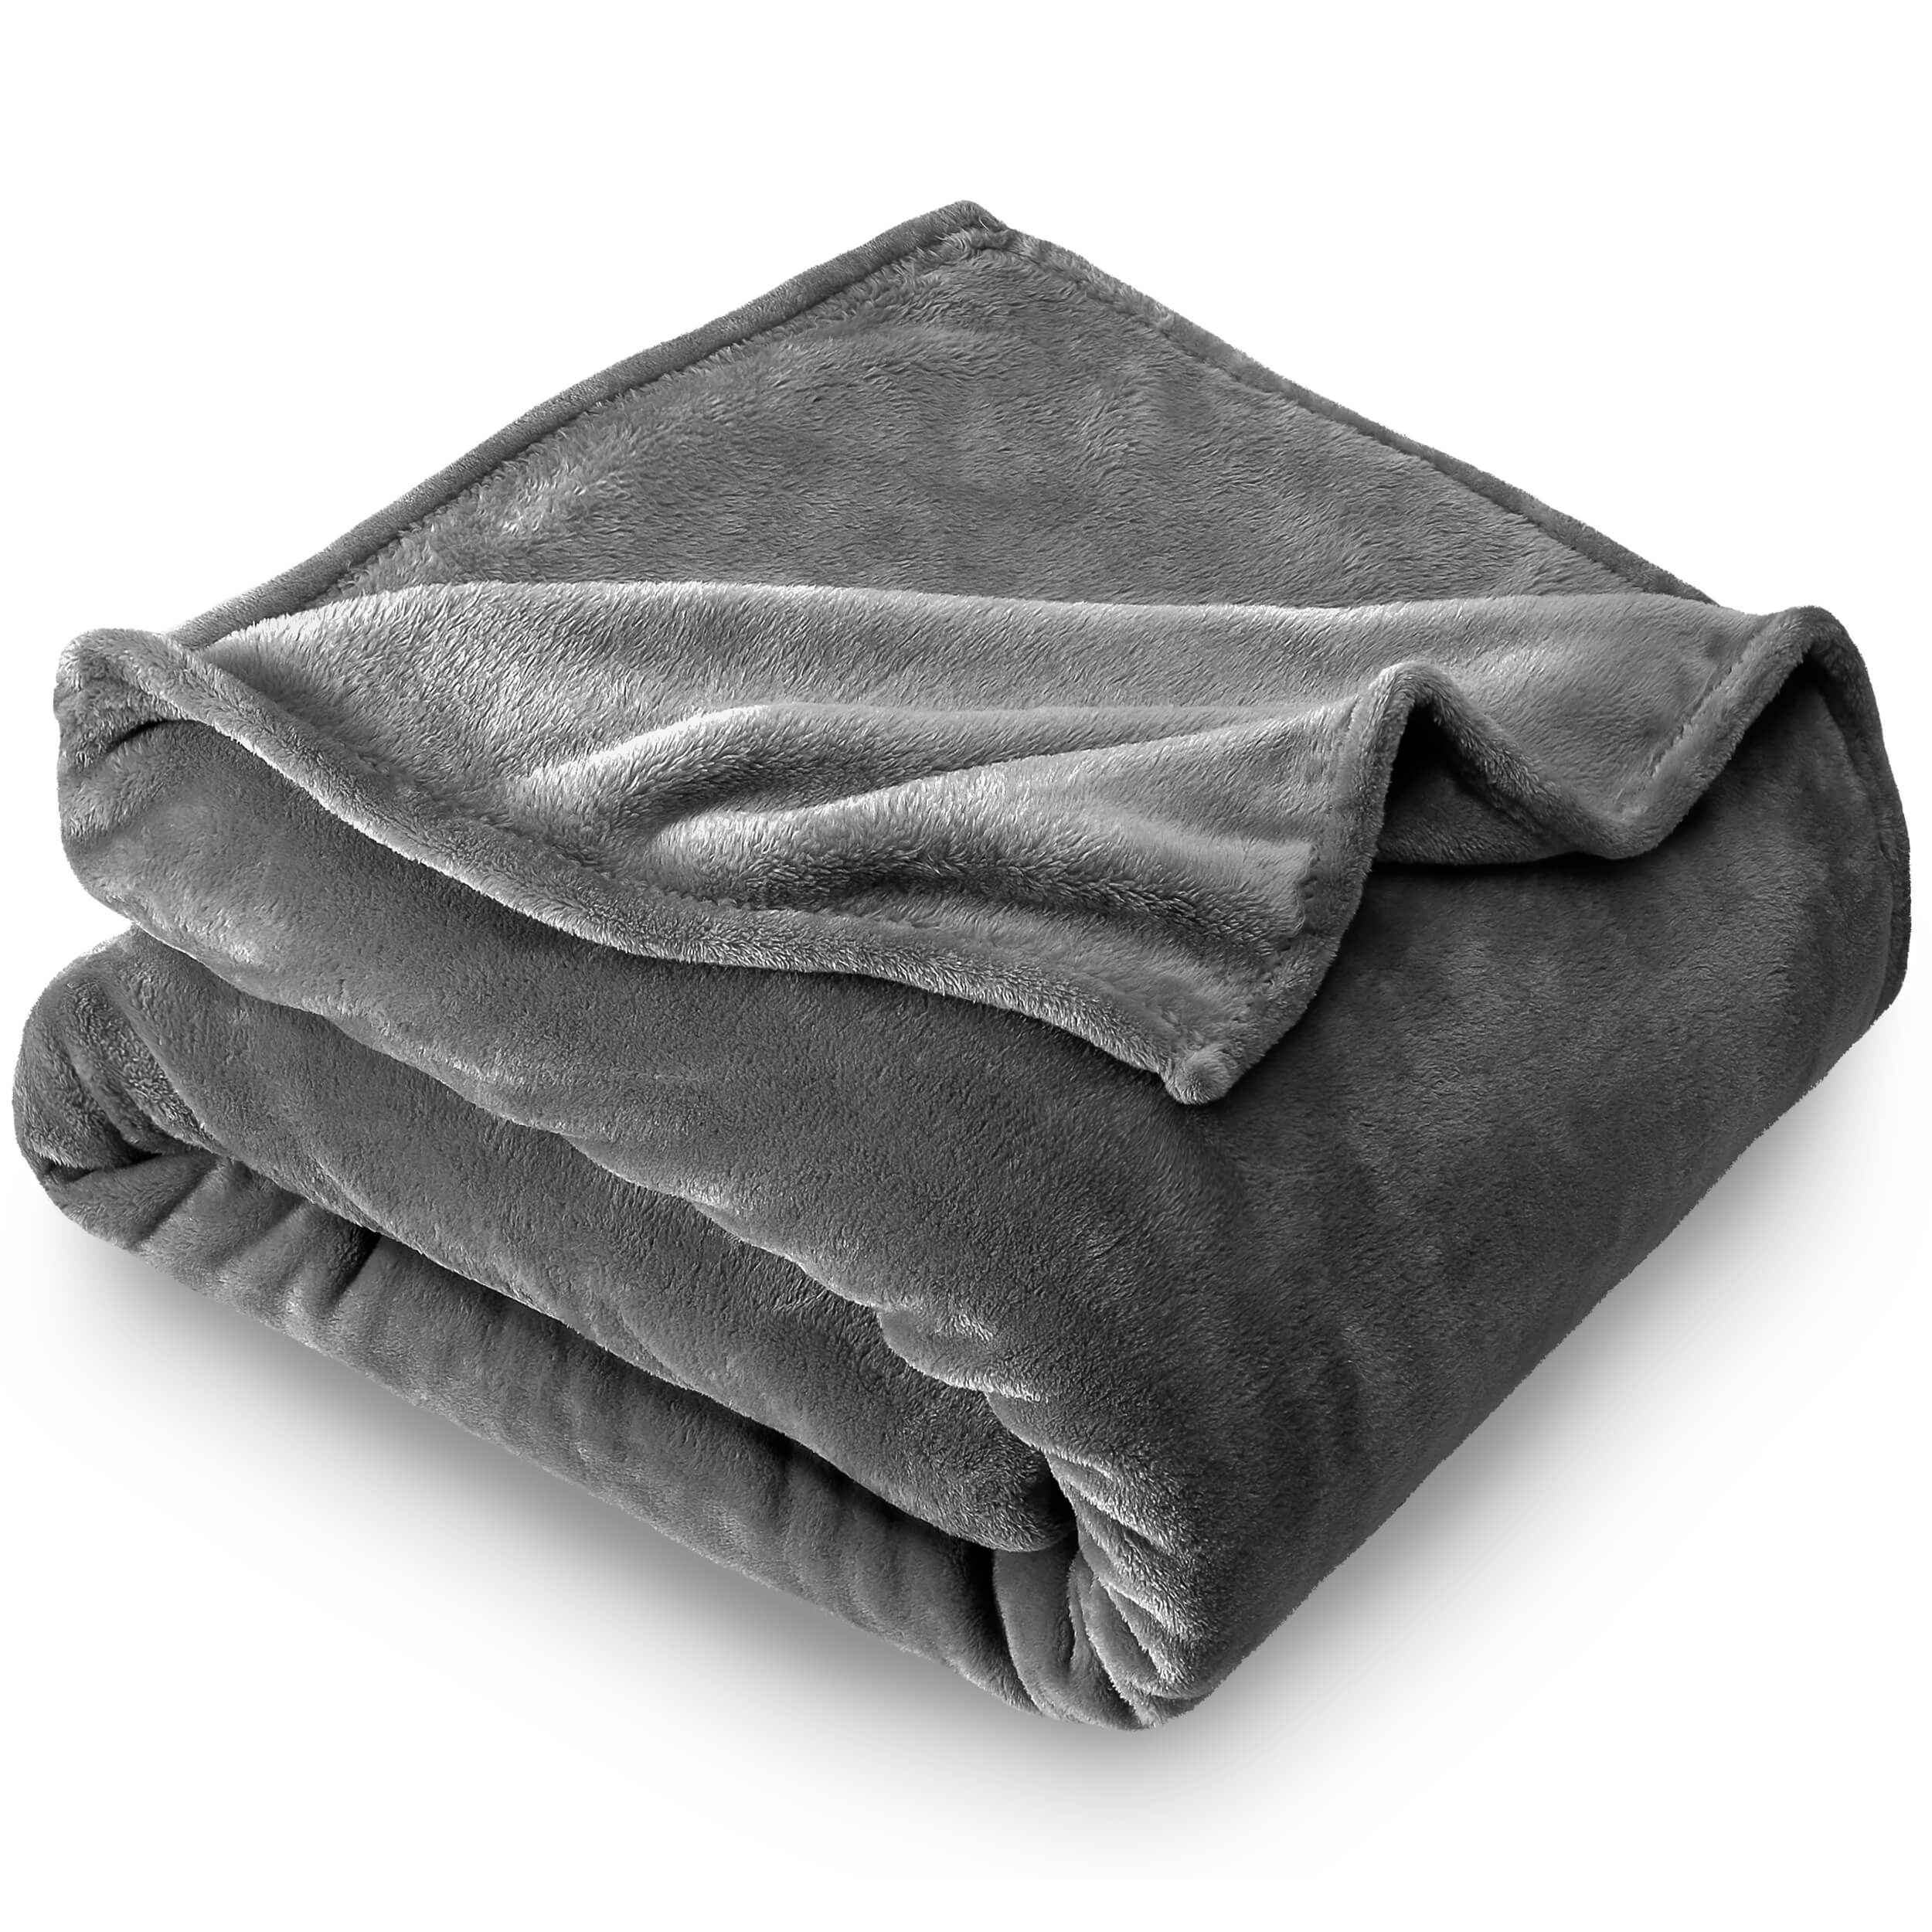 Ultra Soft Microplush Velvet Blanket - Luxurious Fuzzy Fleece Fur - All Season Premium Bed Blanket (Full / Queen, Grey)